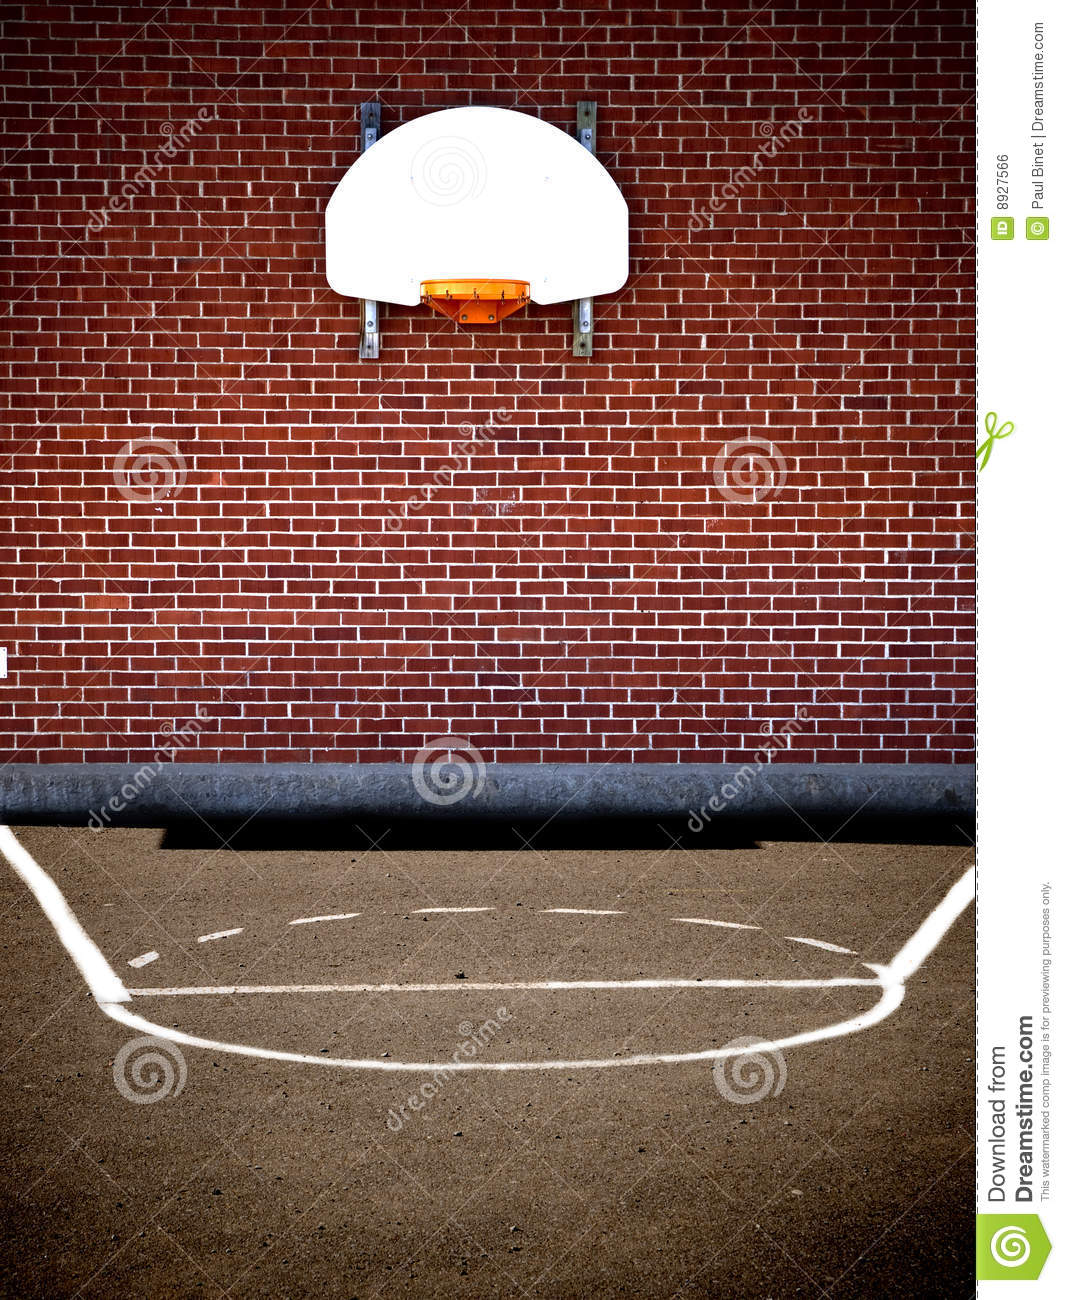 Royalty Free Stock Image  Empty basketball courtEmpty Indoor Basketball Court